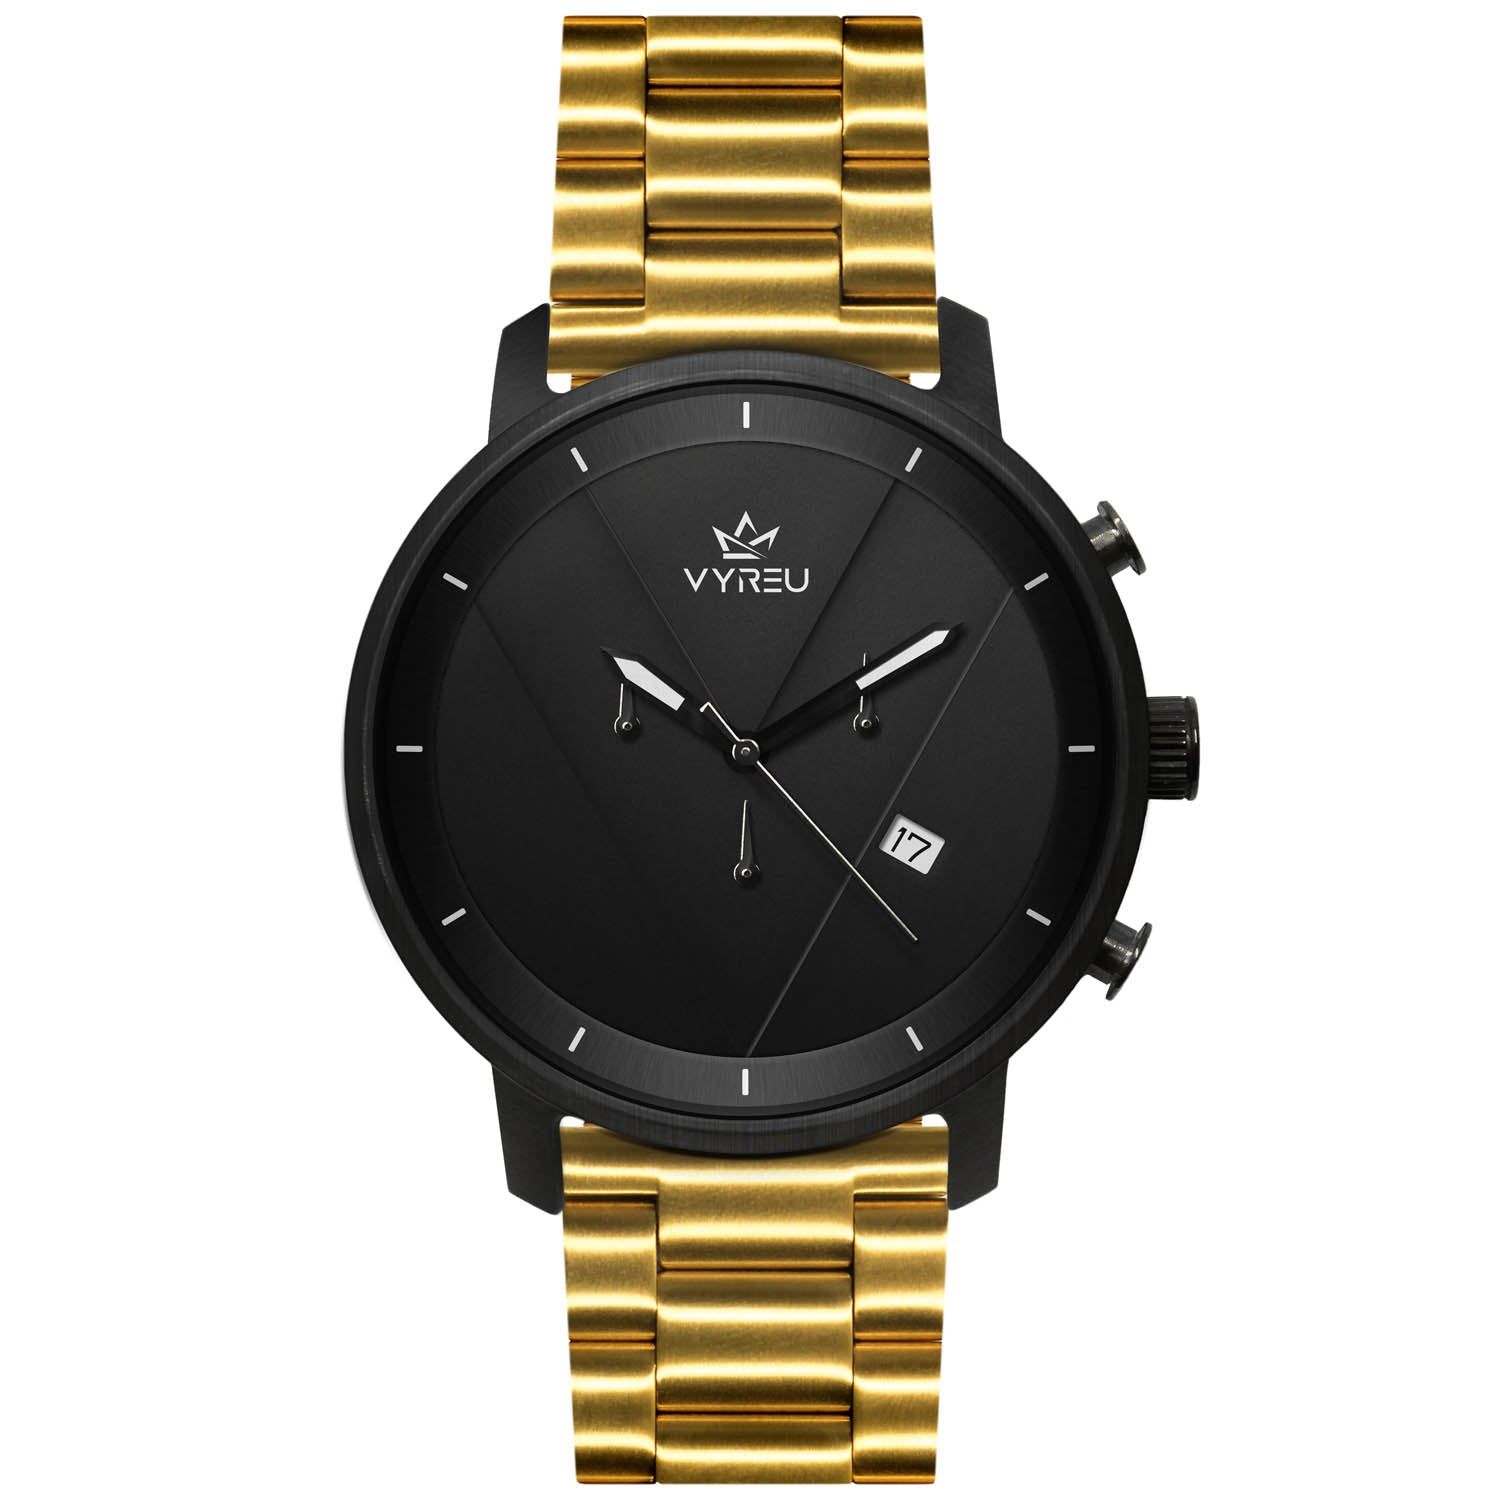 ANTHRACITE GOLD - VYREU